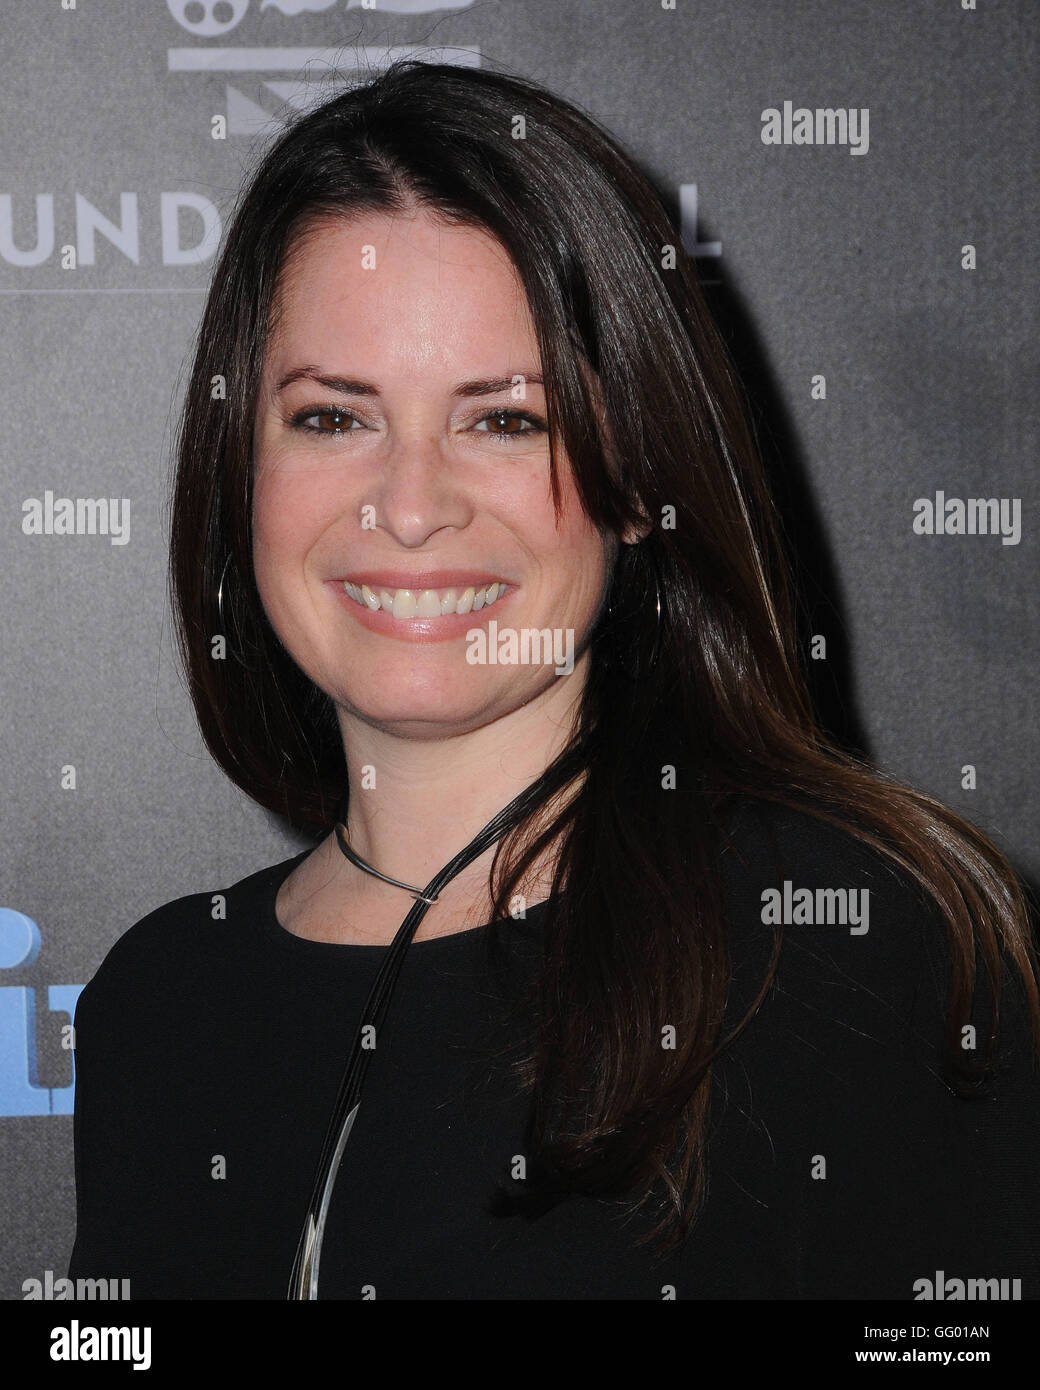 Hollywood Ca Usa 1st Aug 2016 Holly Marie Combs World Premiere